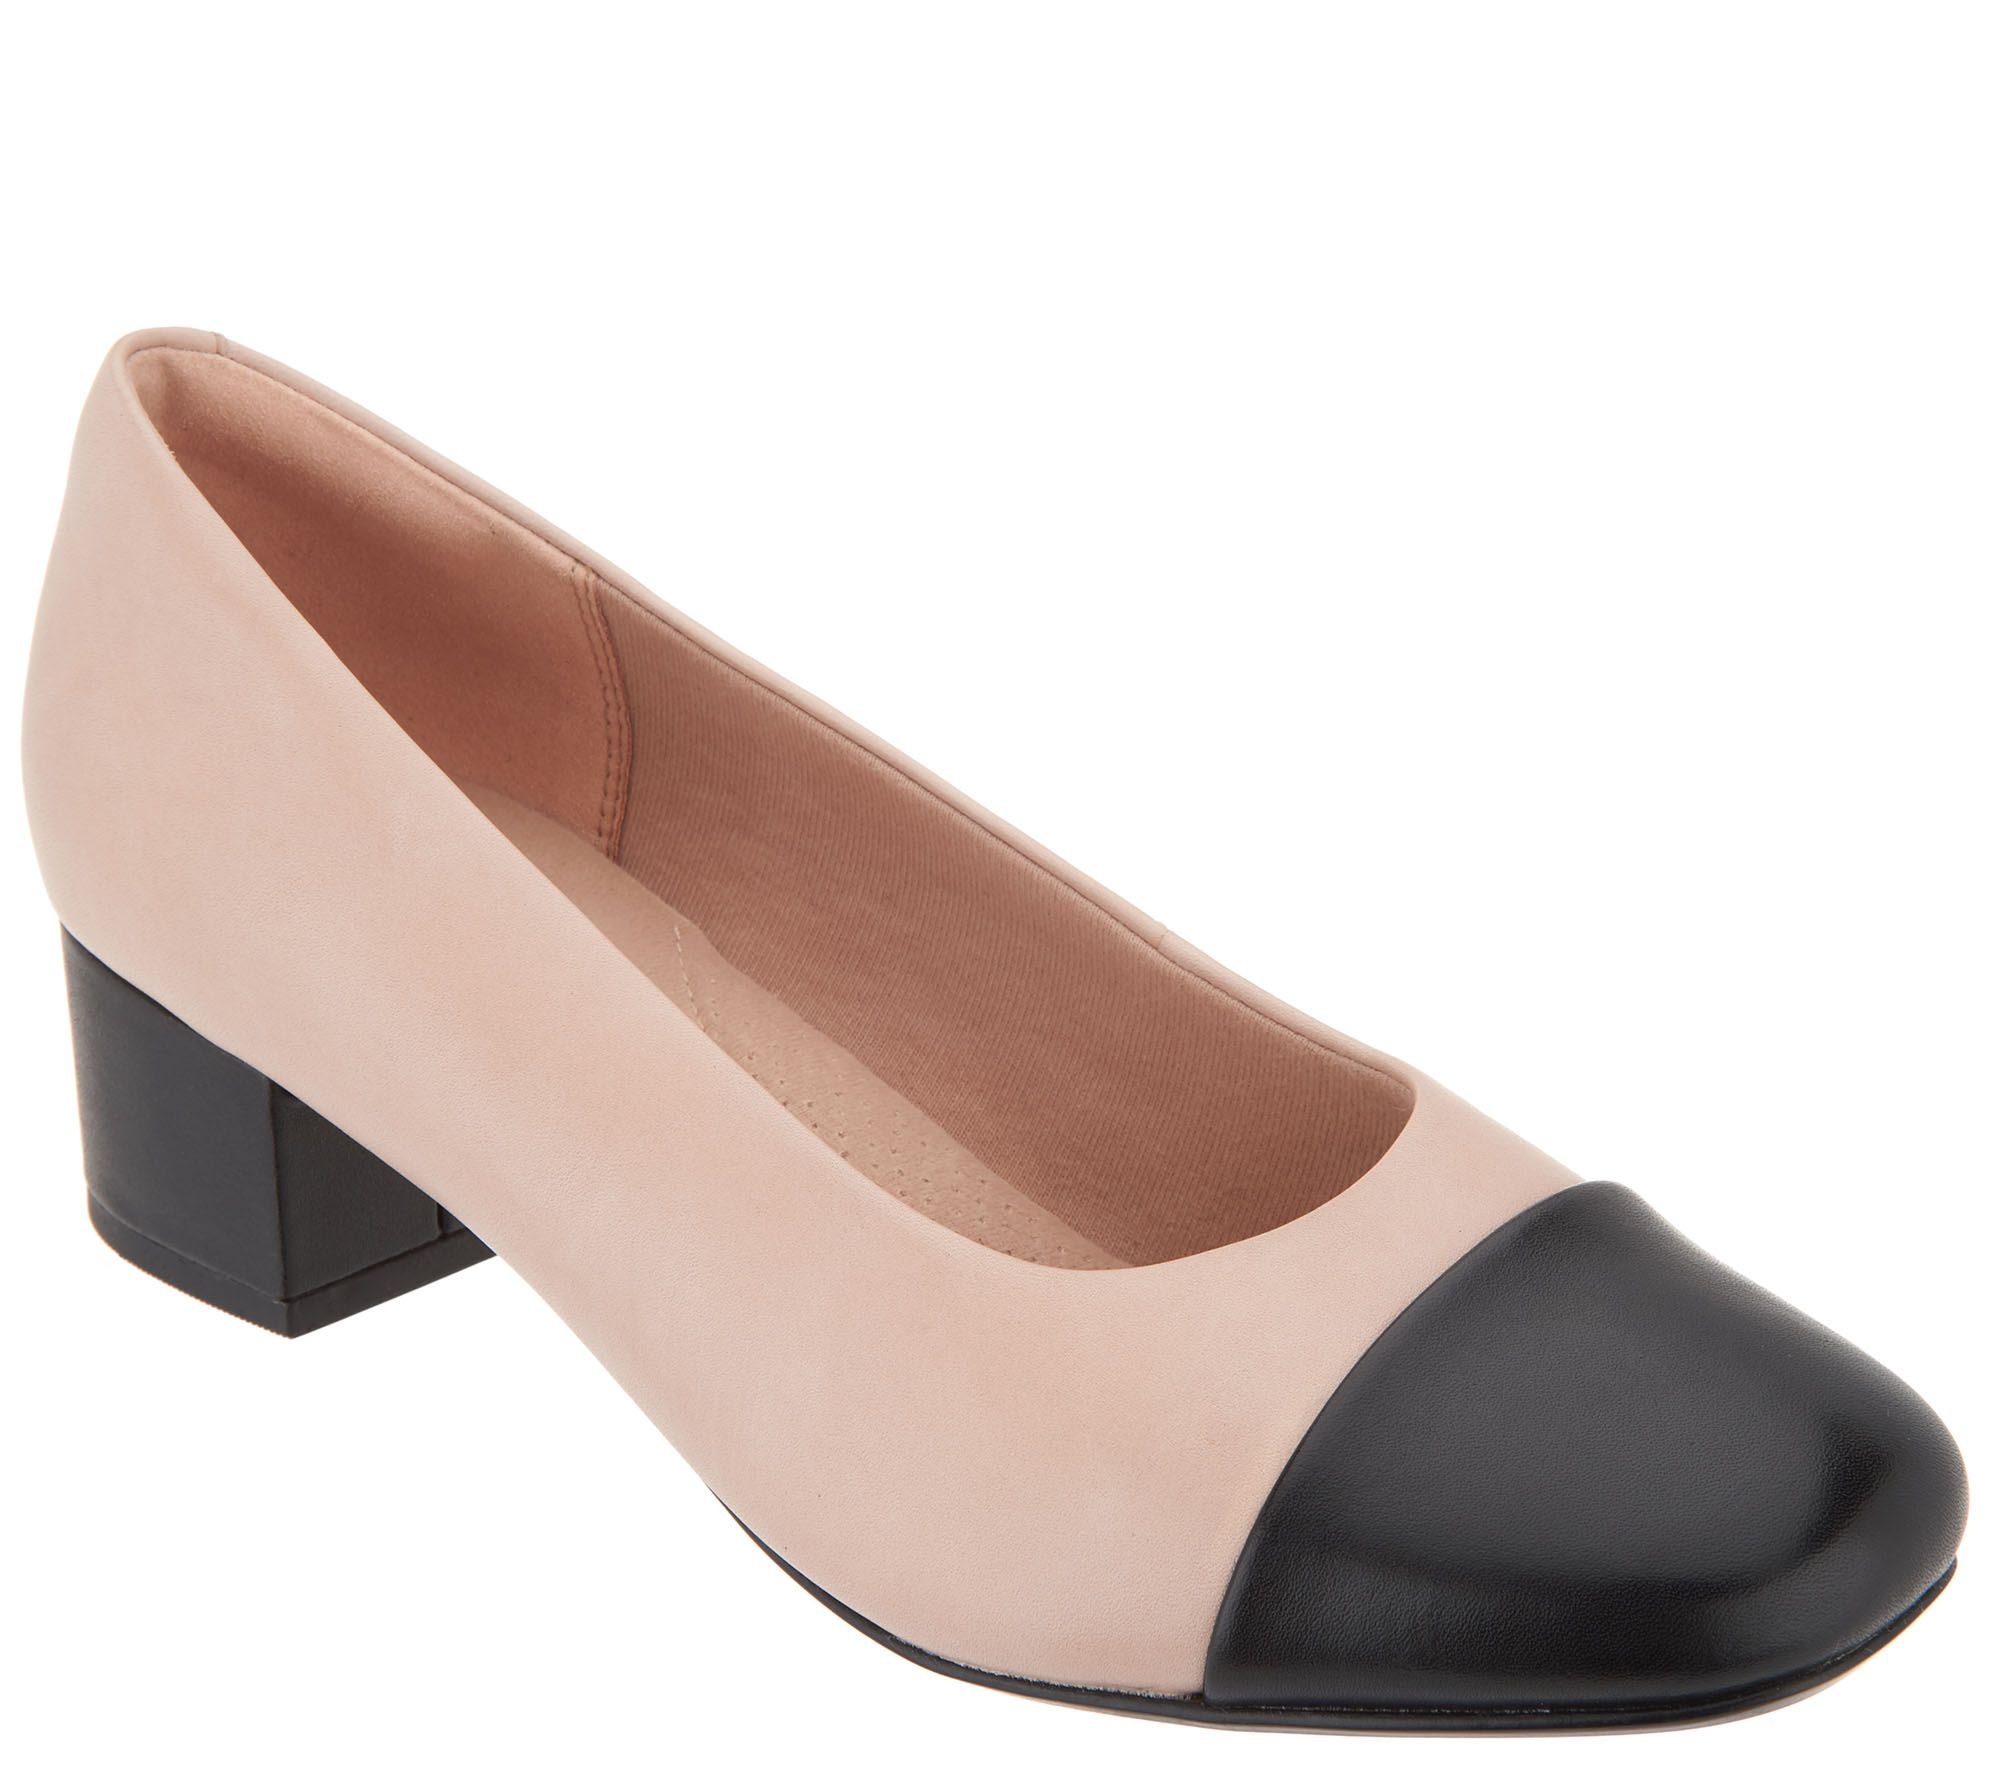 a65eb89181 Clarks Collection Leather Pumps - Chartli Diva - Page 1 — QVC.com